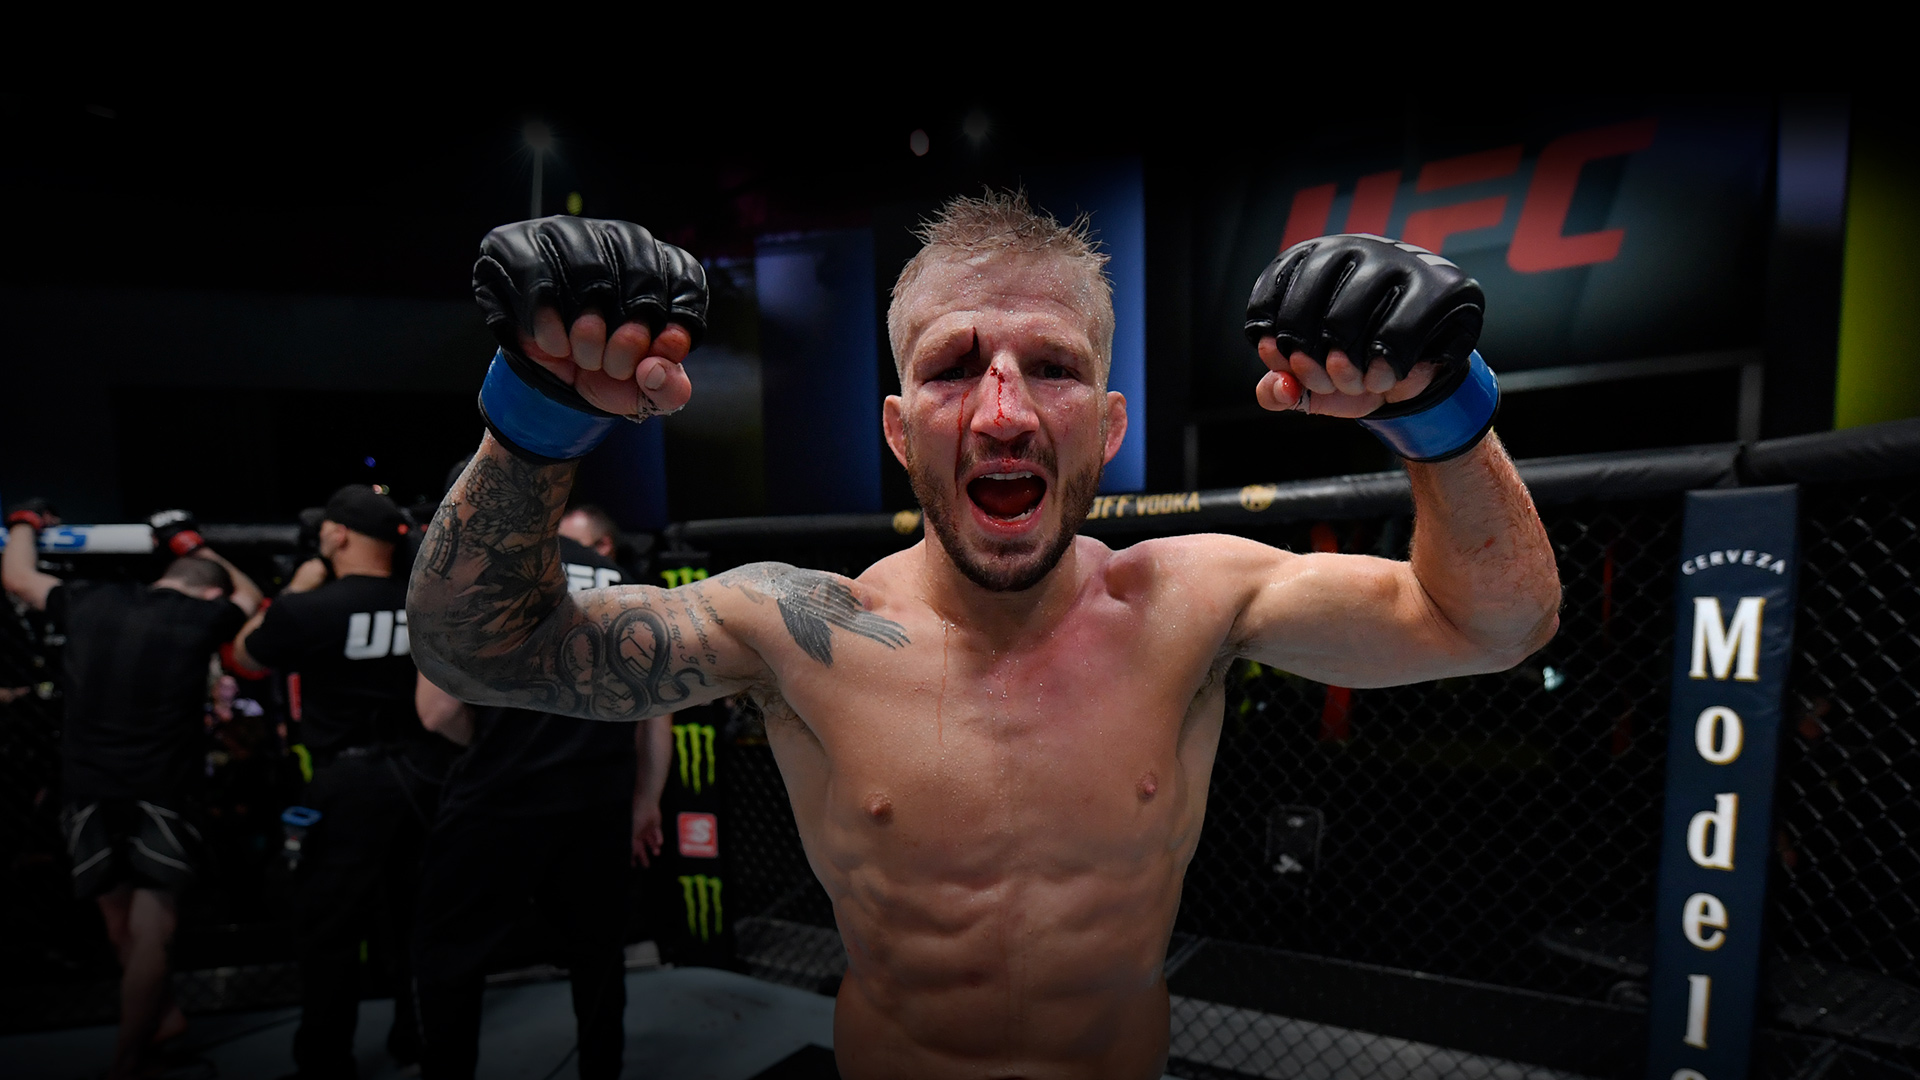 Dillashaw reacts after his split-decision victory over Corey Sandhagen in their bantamweight fight during the UFC Fight Night event at UFC APEX on July 24, 2021 in Las Vegas, Nevada. (Photo by Jeff Bottari/Zuffa LLC)